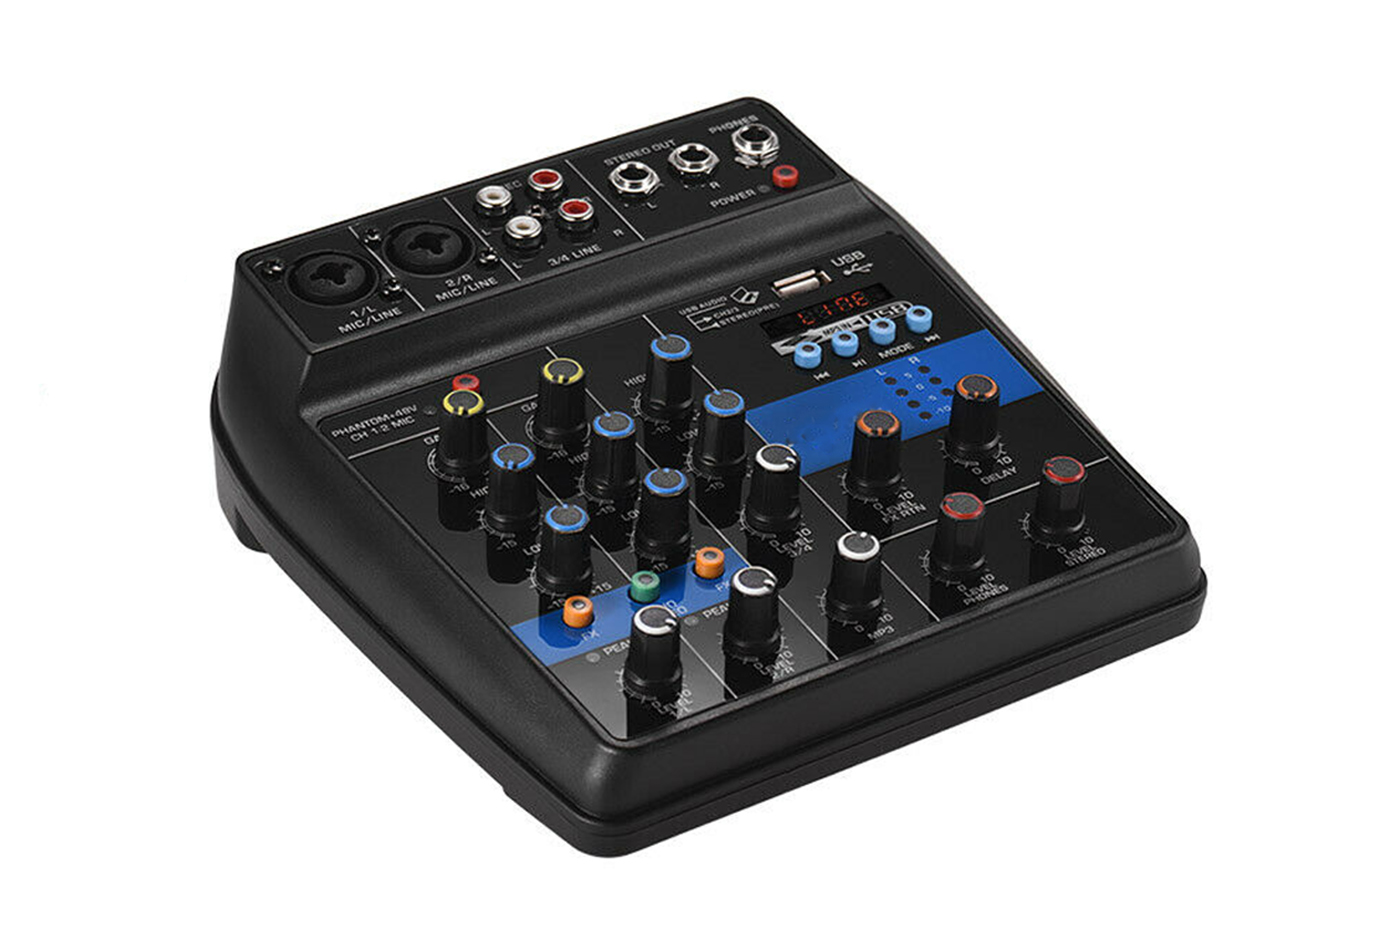 Consolle mixer audio professionale 4 canali usb karaoke mic/line mp3 F2-MB